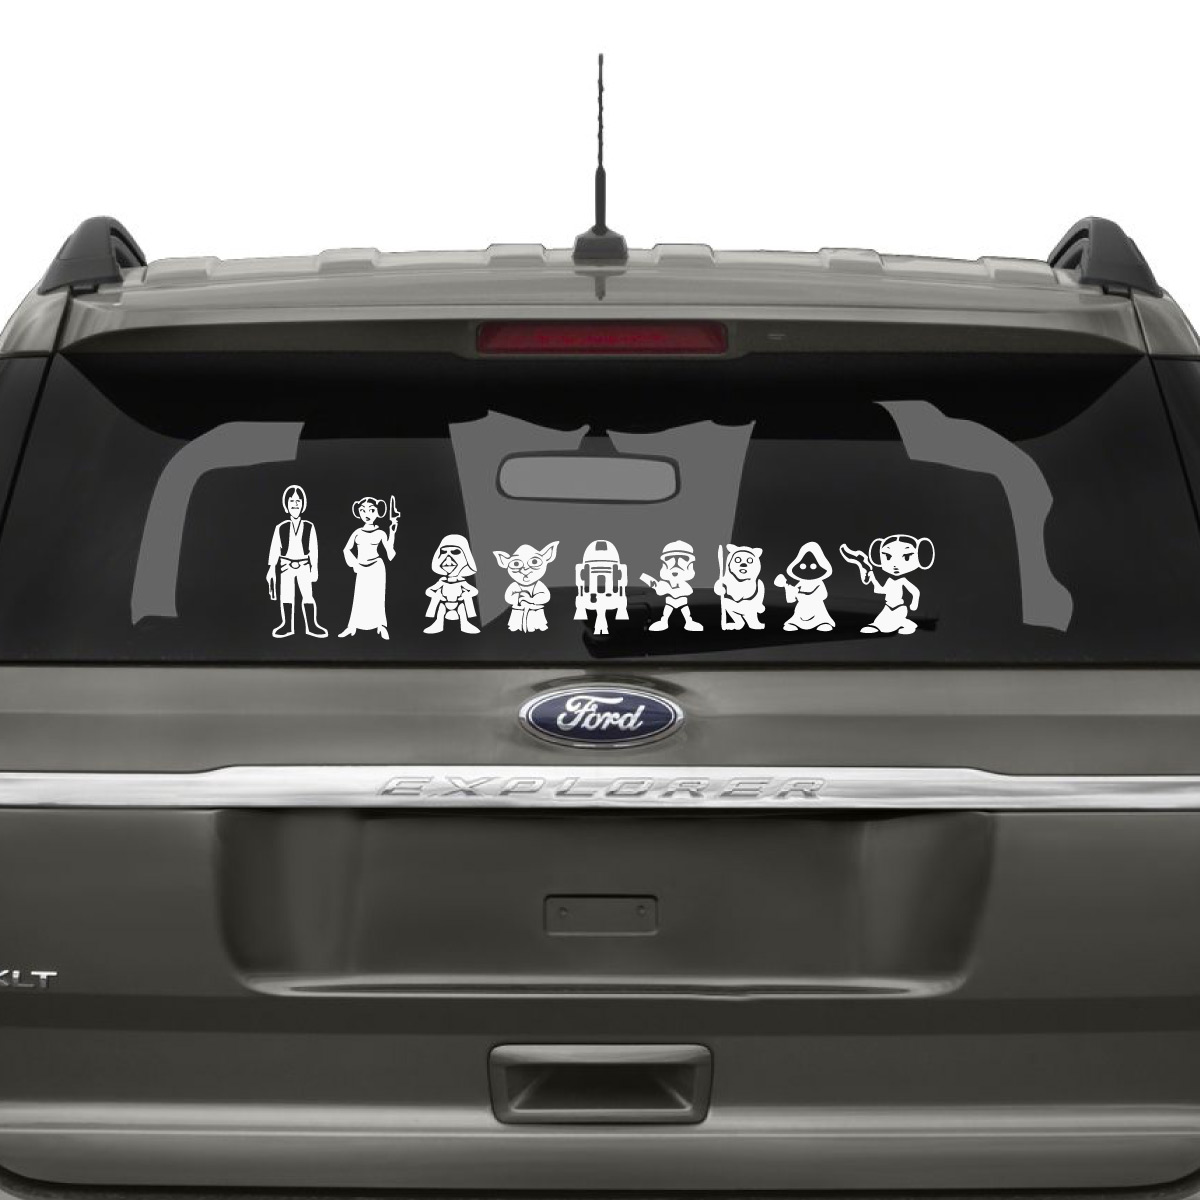 Unique Decals You Never Knew Existed The Decal Guru - Unique car decals stickers